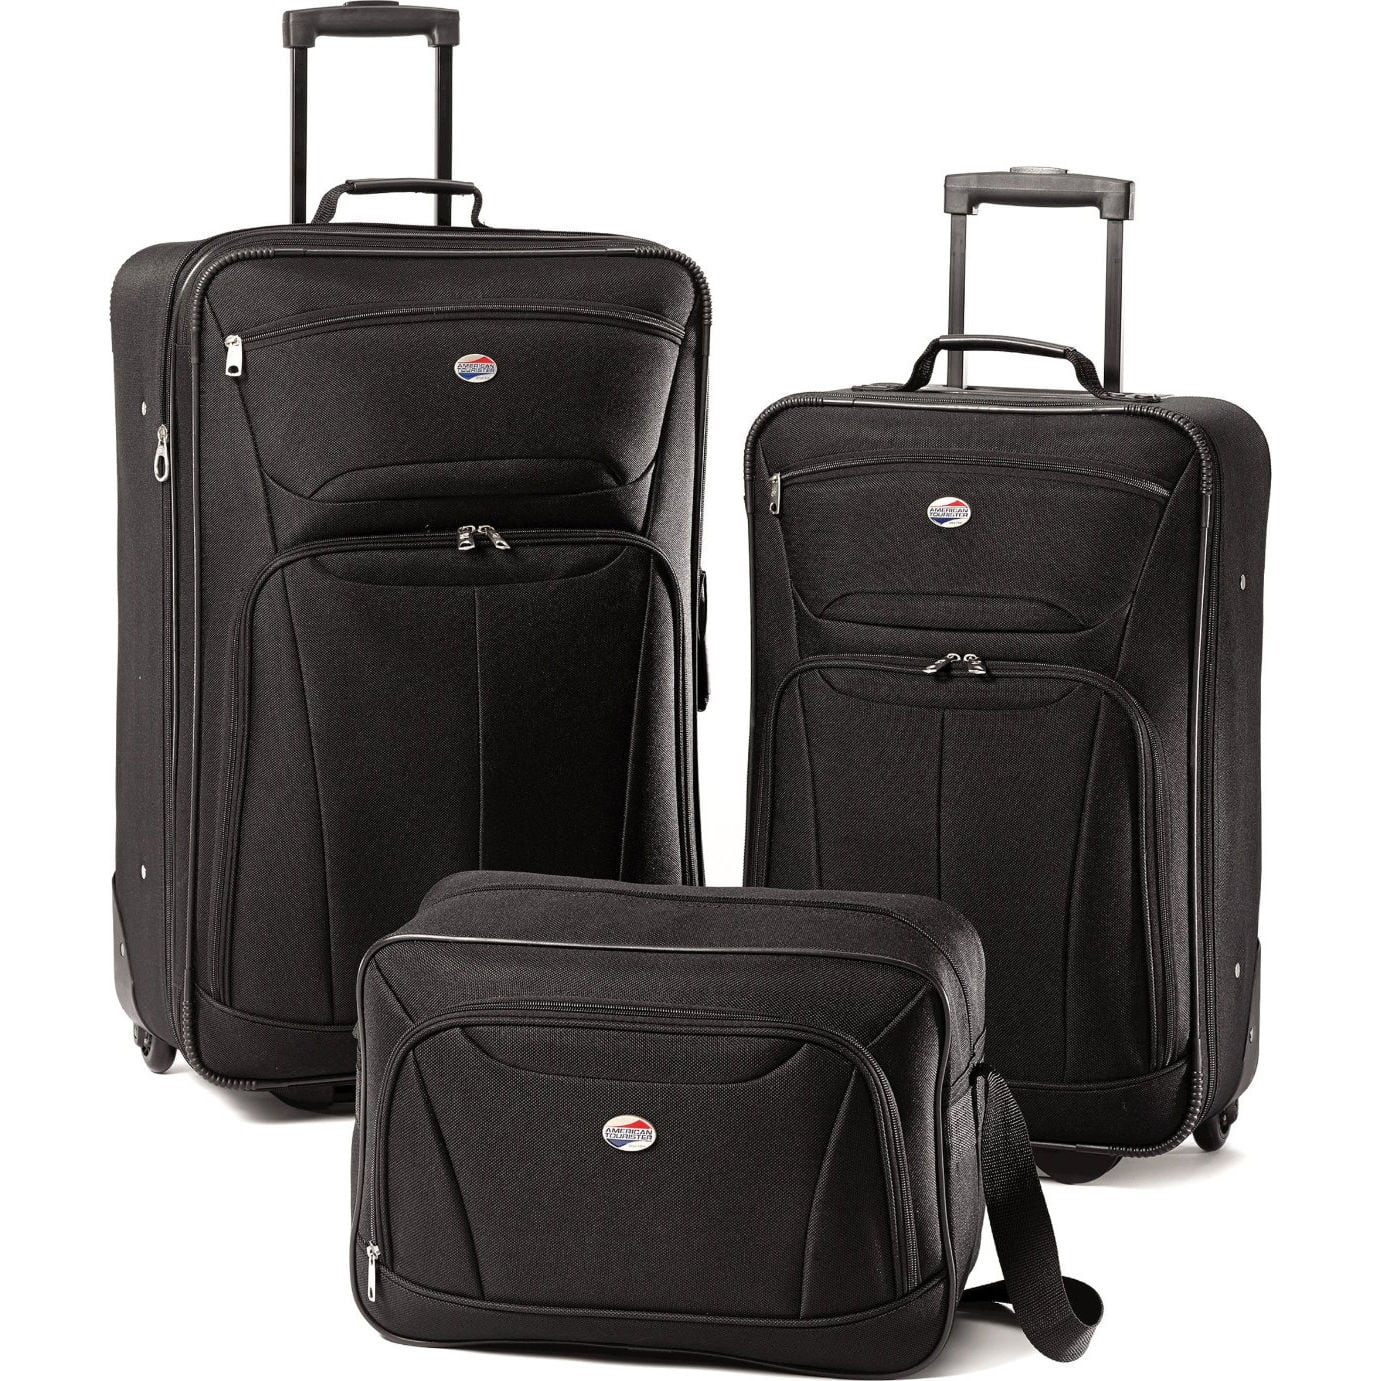 American Tourister Fieldbrook II 3-Piece Luggage Set (Black)  $40 + Free Shipping